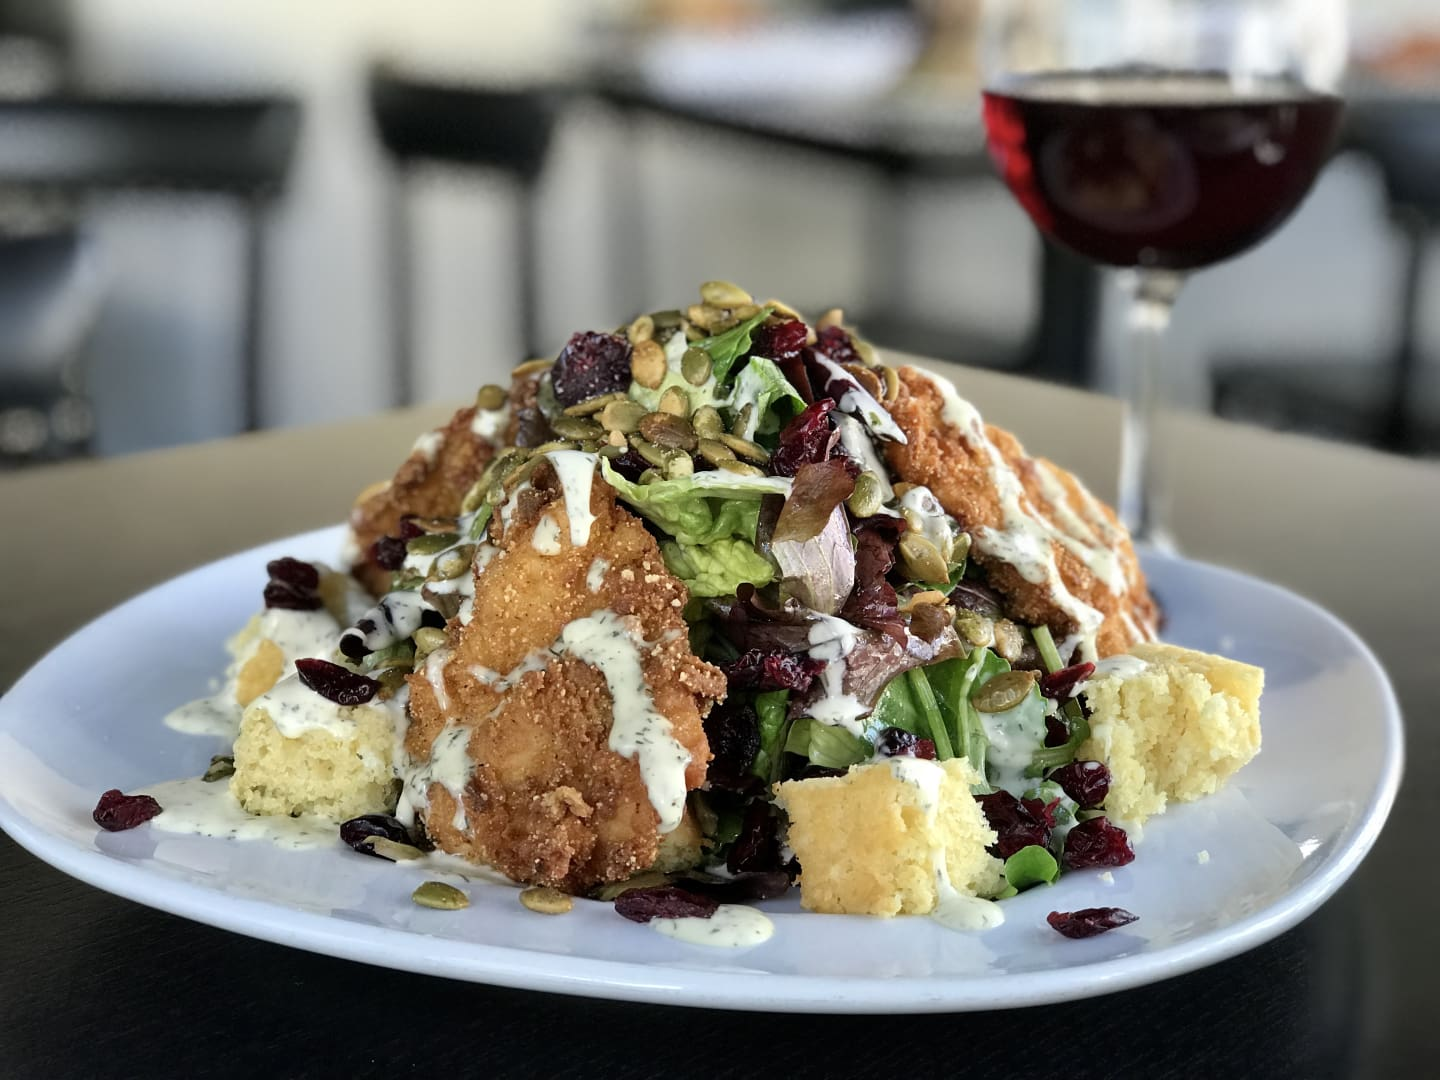 Fried Chicken Salad w/ Cornbread, Dried Cranberries, Pumpkin Seeds & Herb Buttermilk Dressing